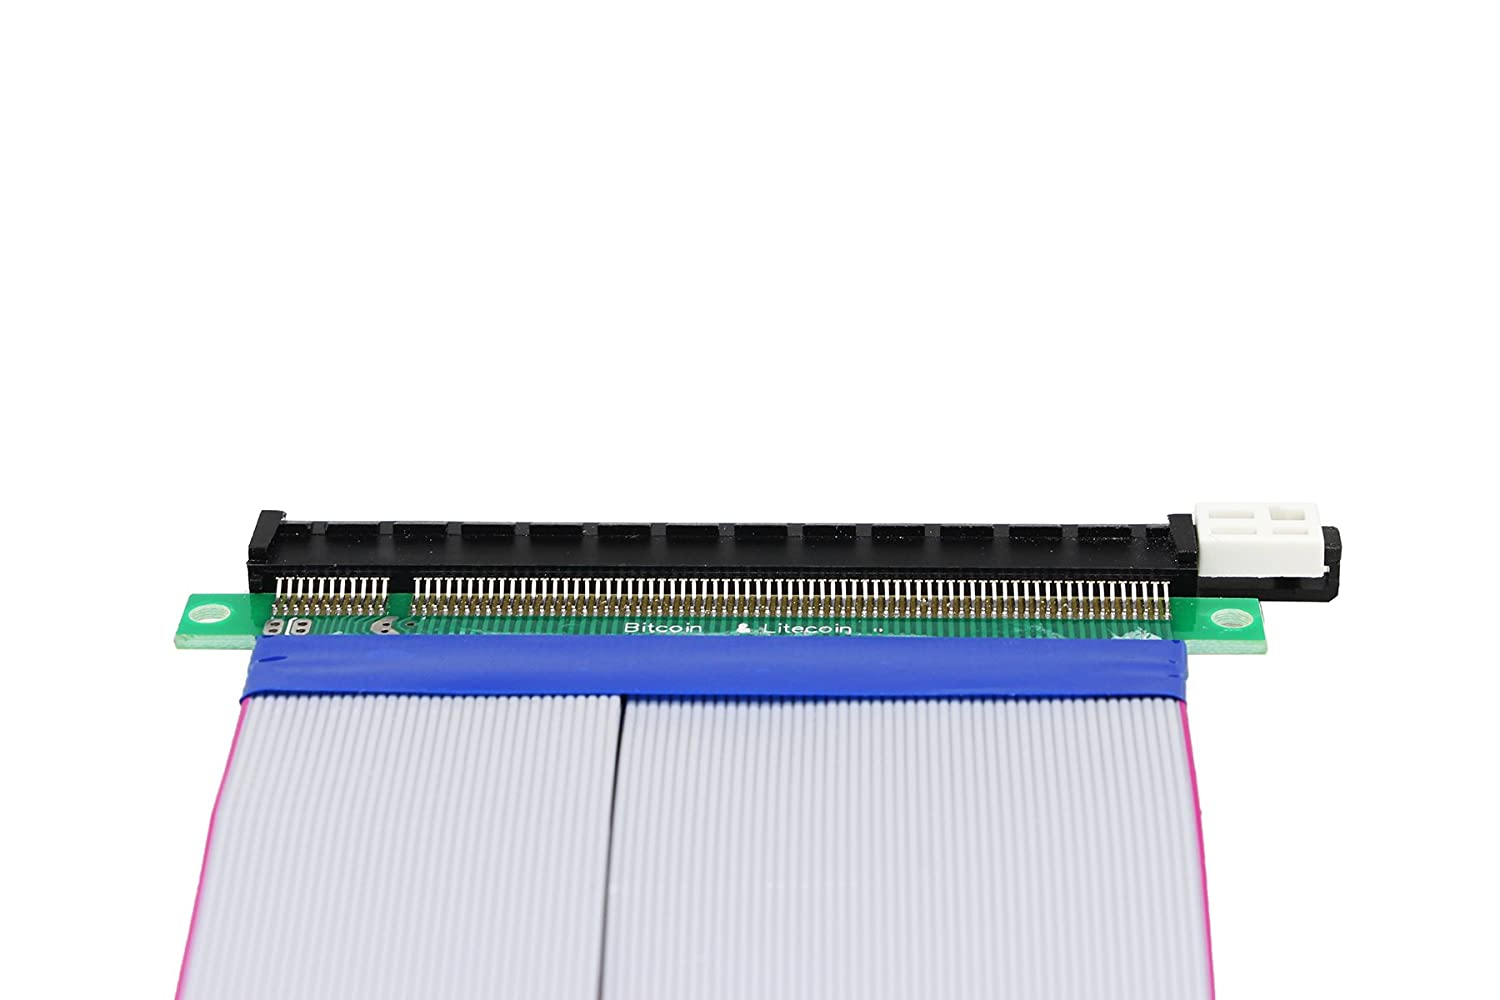 5.3 Inch//13.5cm Total length about 19CM CERRXIAN PCI Express 16x Flexible Cable PCI Express 16x Flexible Cable Riser Card Extension Port Adapter.